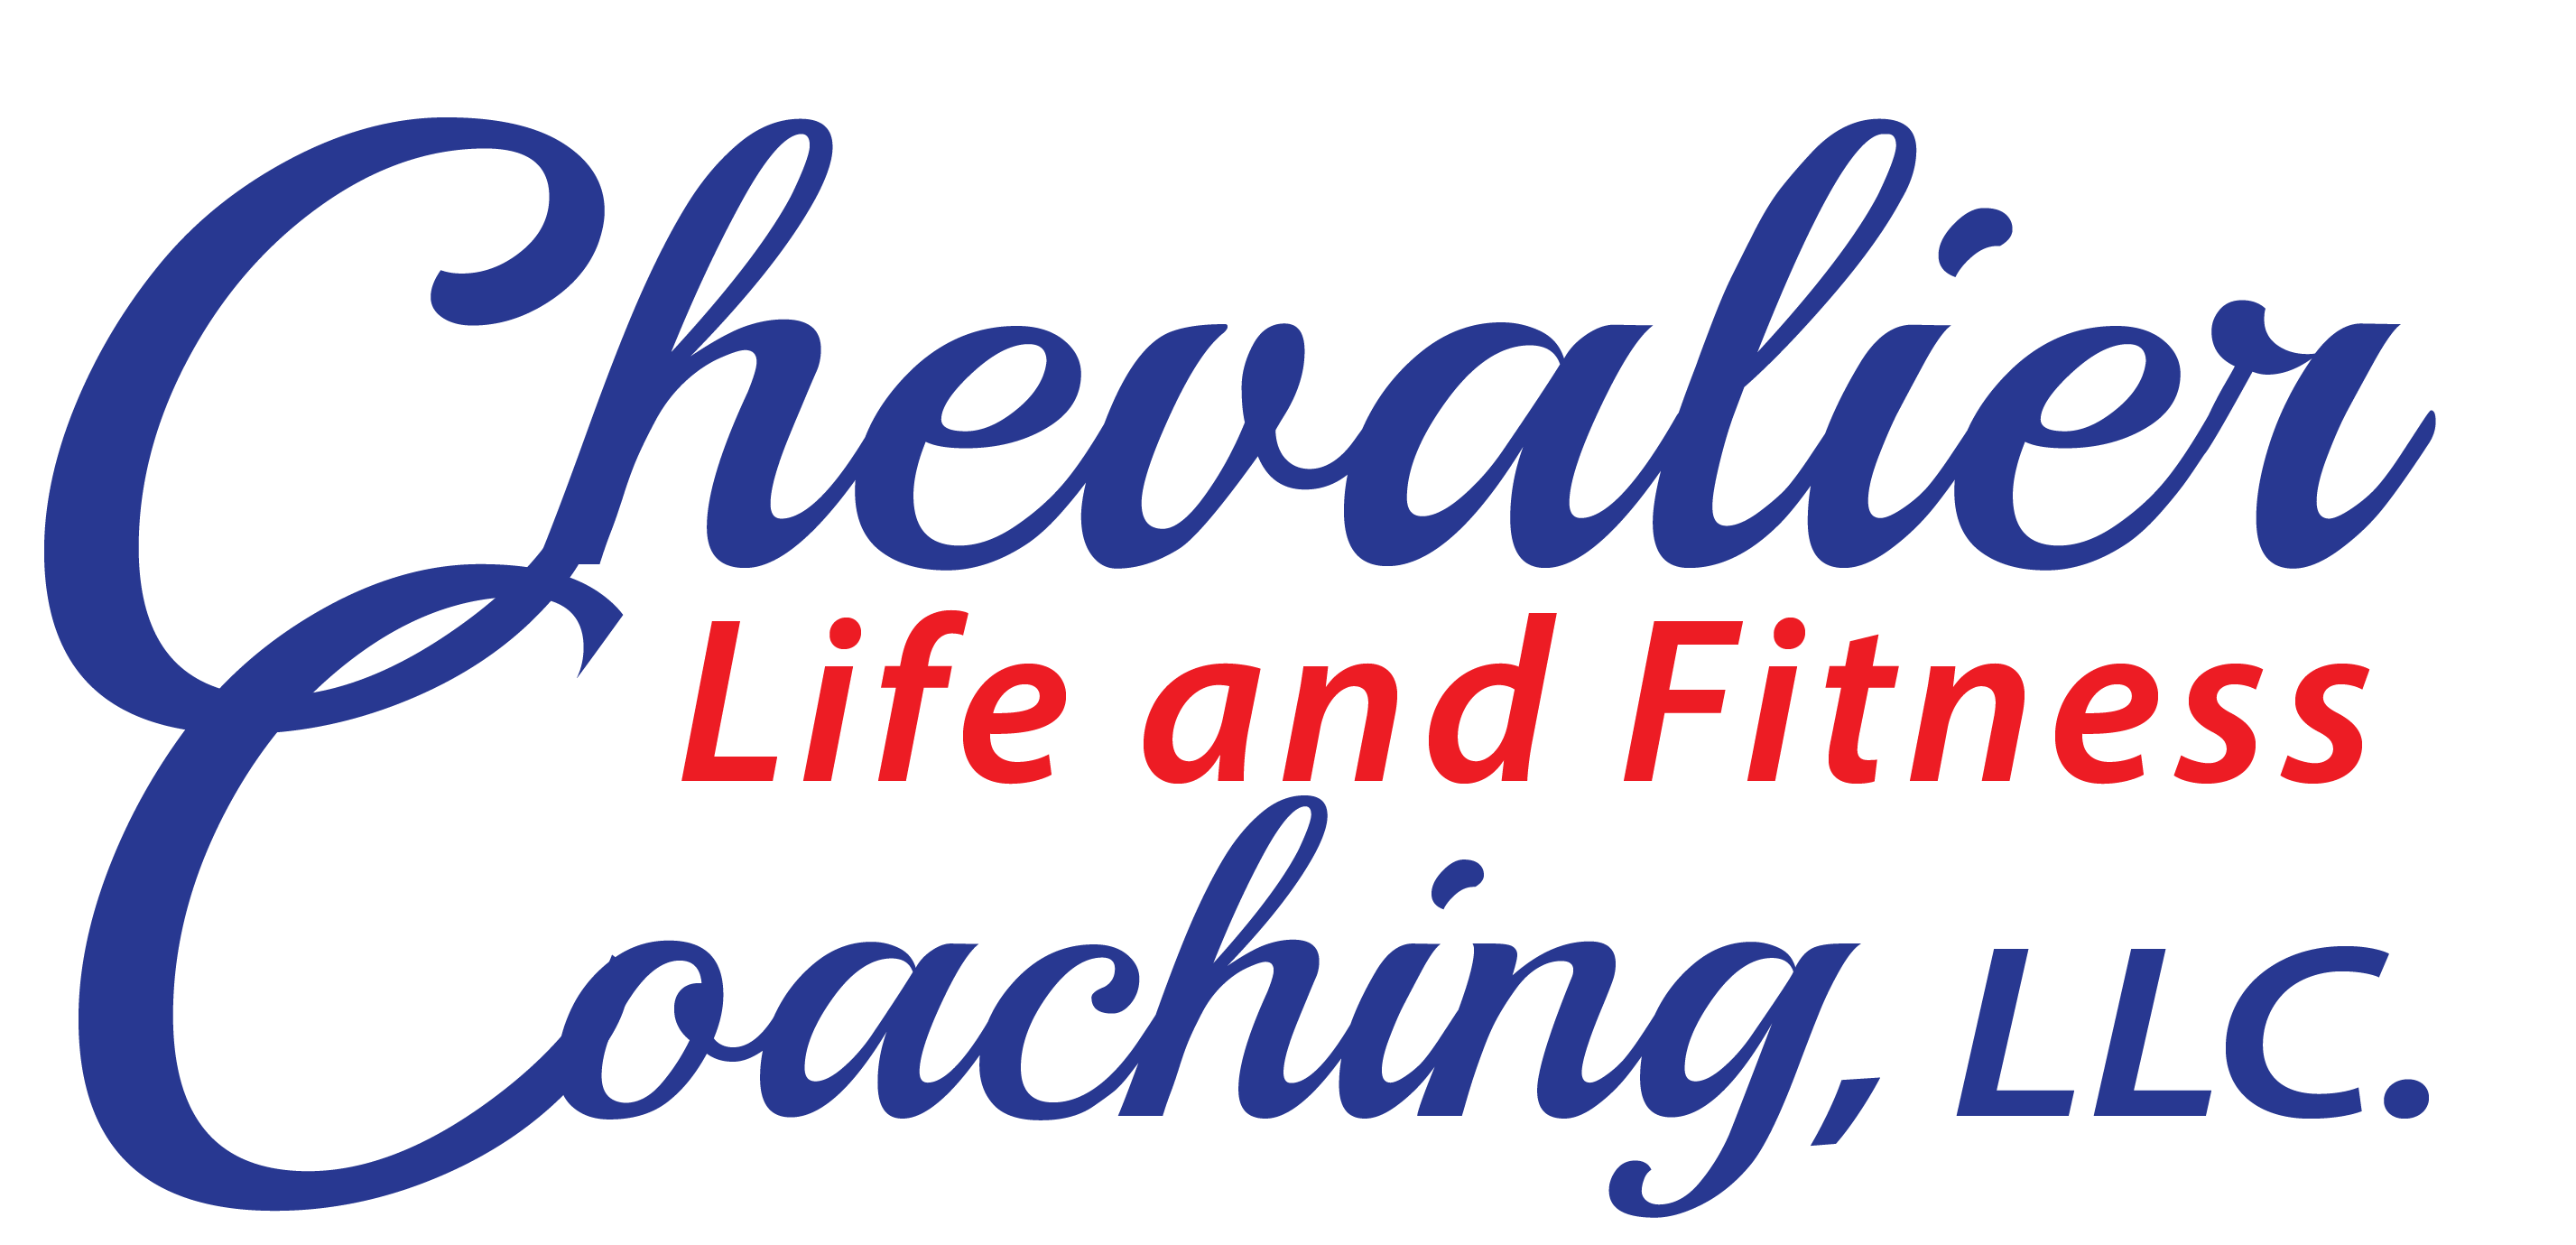 Chevalier Life & Fitness Coaching, LLC